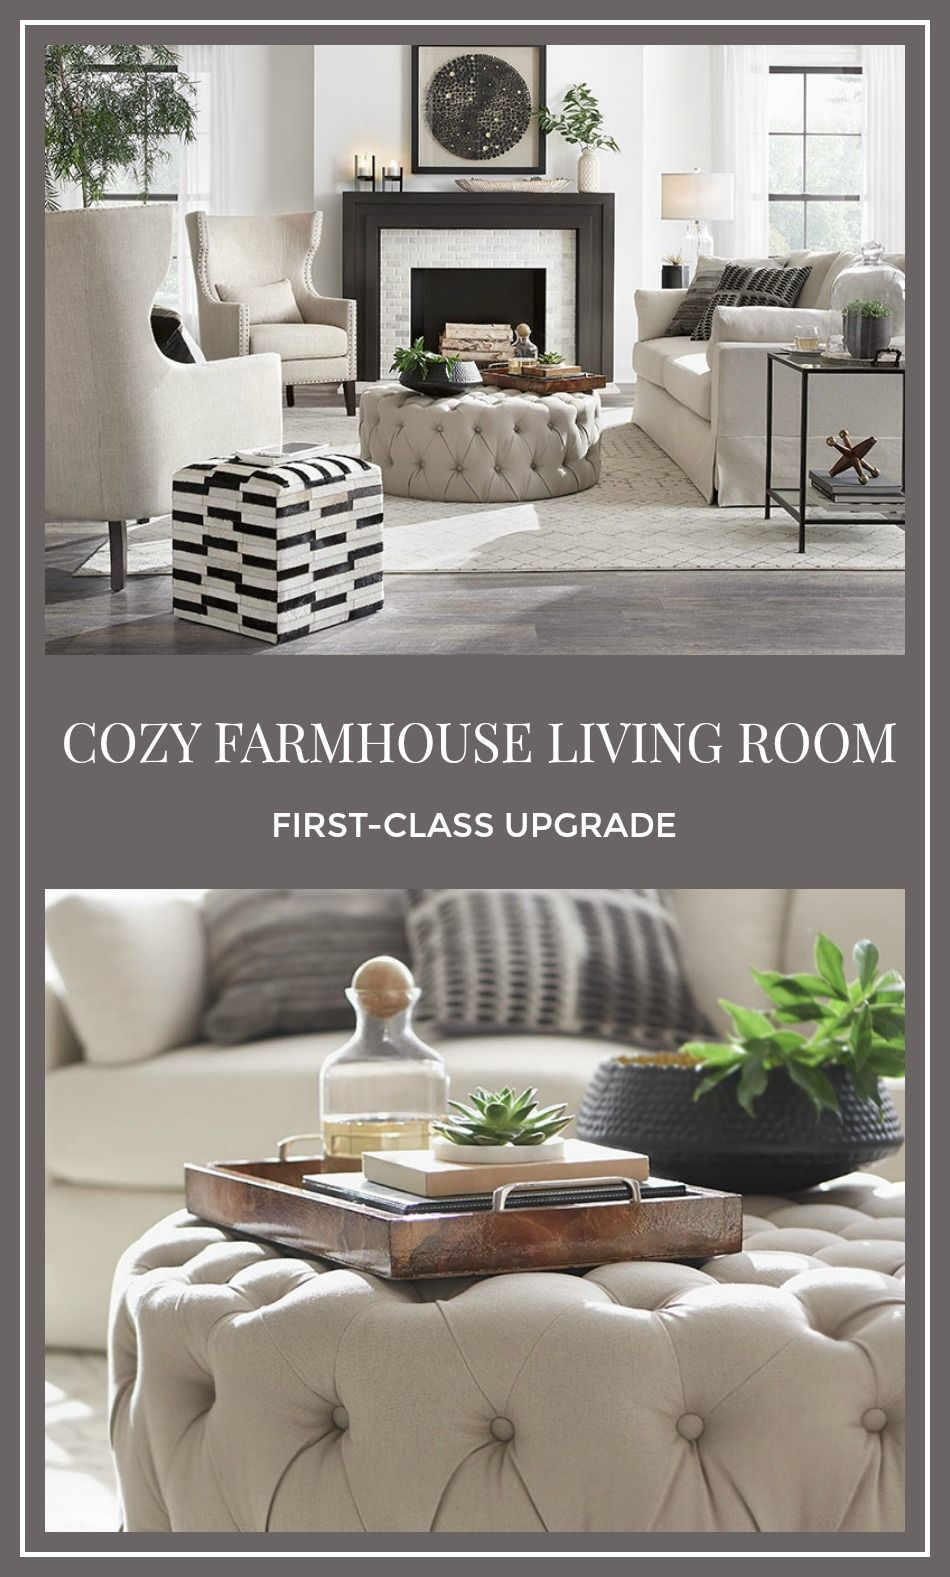 Give A Cozy Farmhouse Living Room A First Class Upgrade